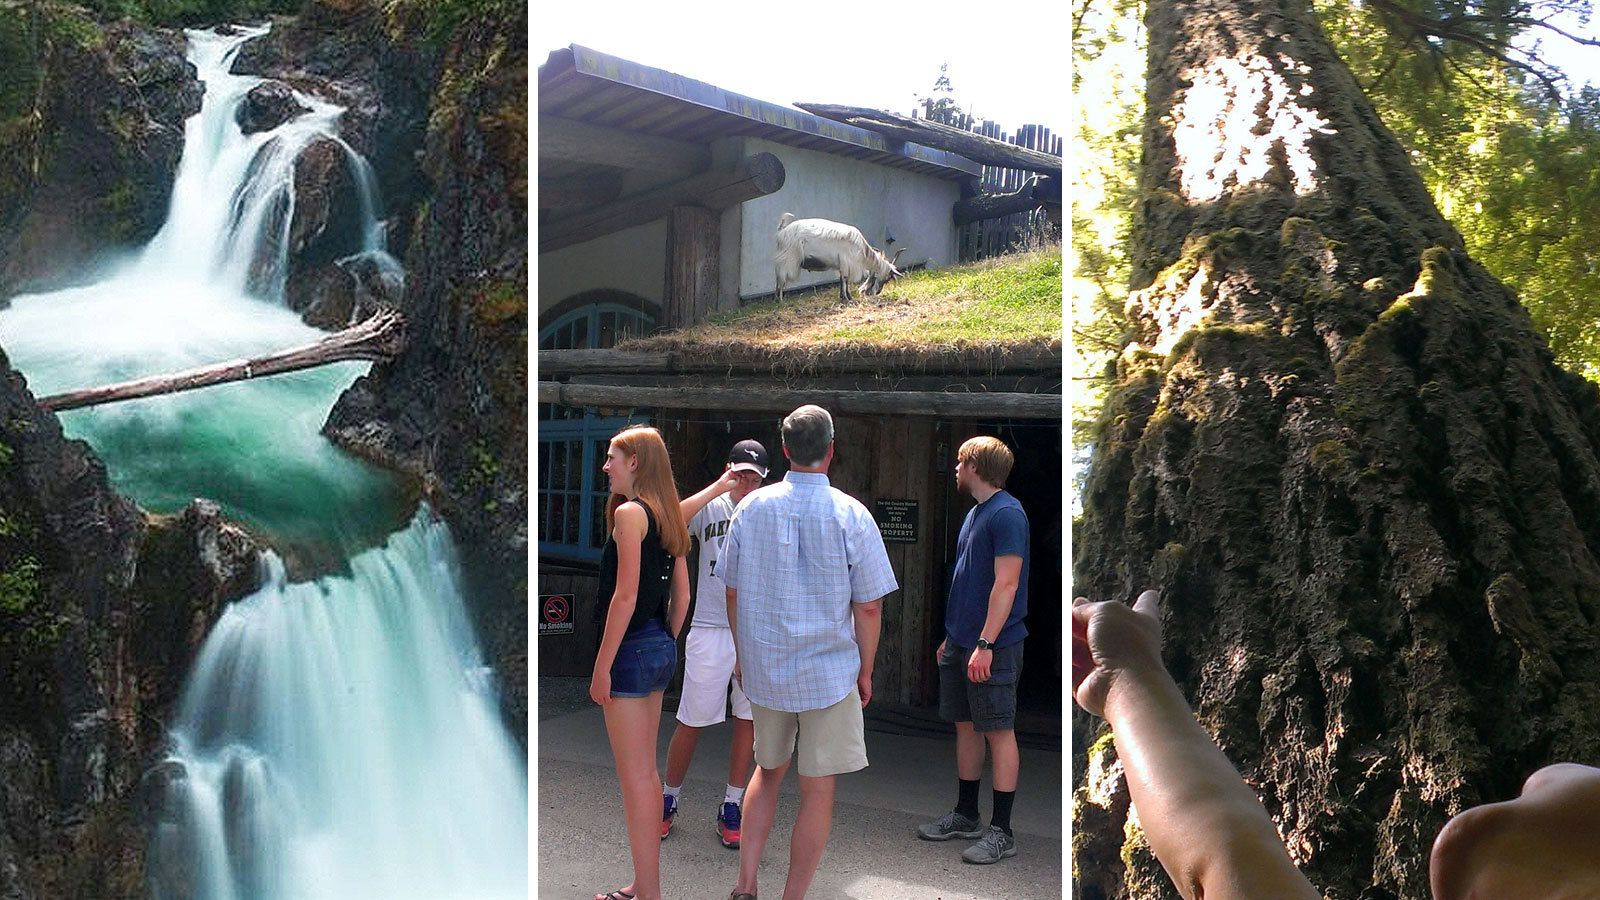 Combo images of attractions in Victoria